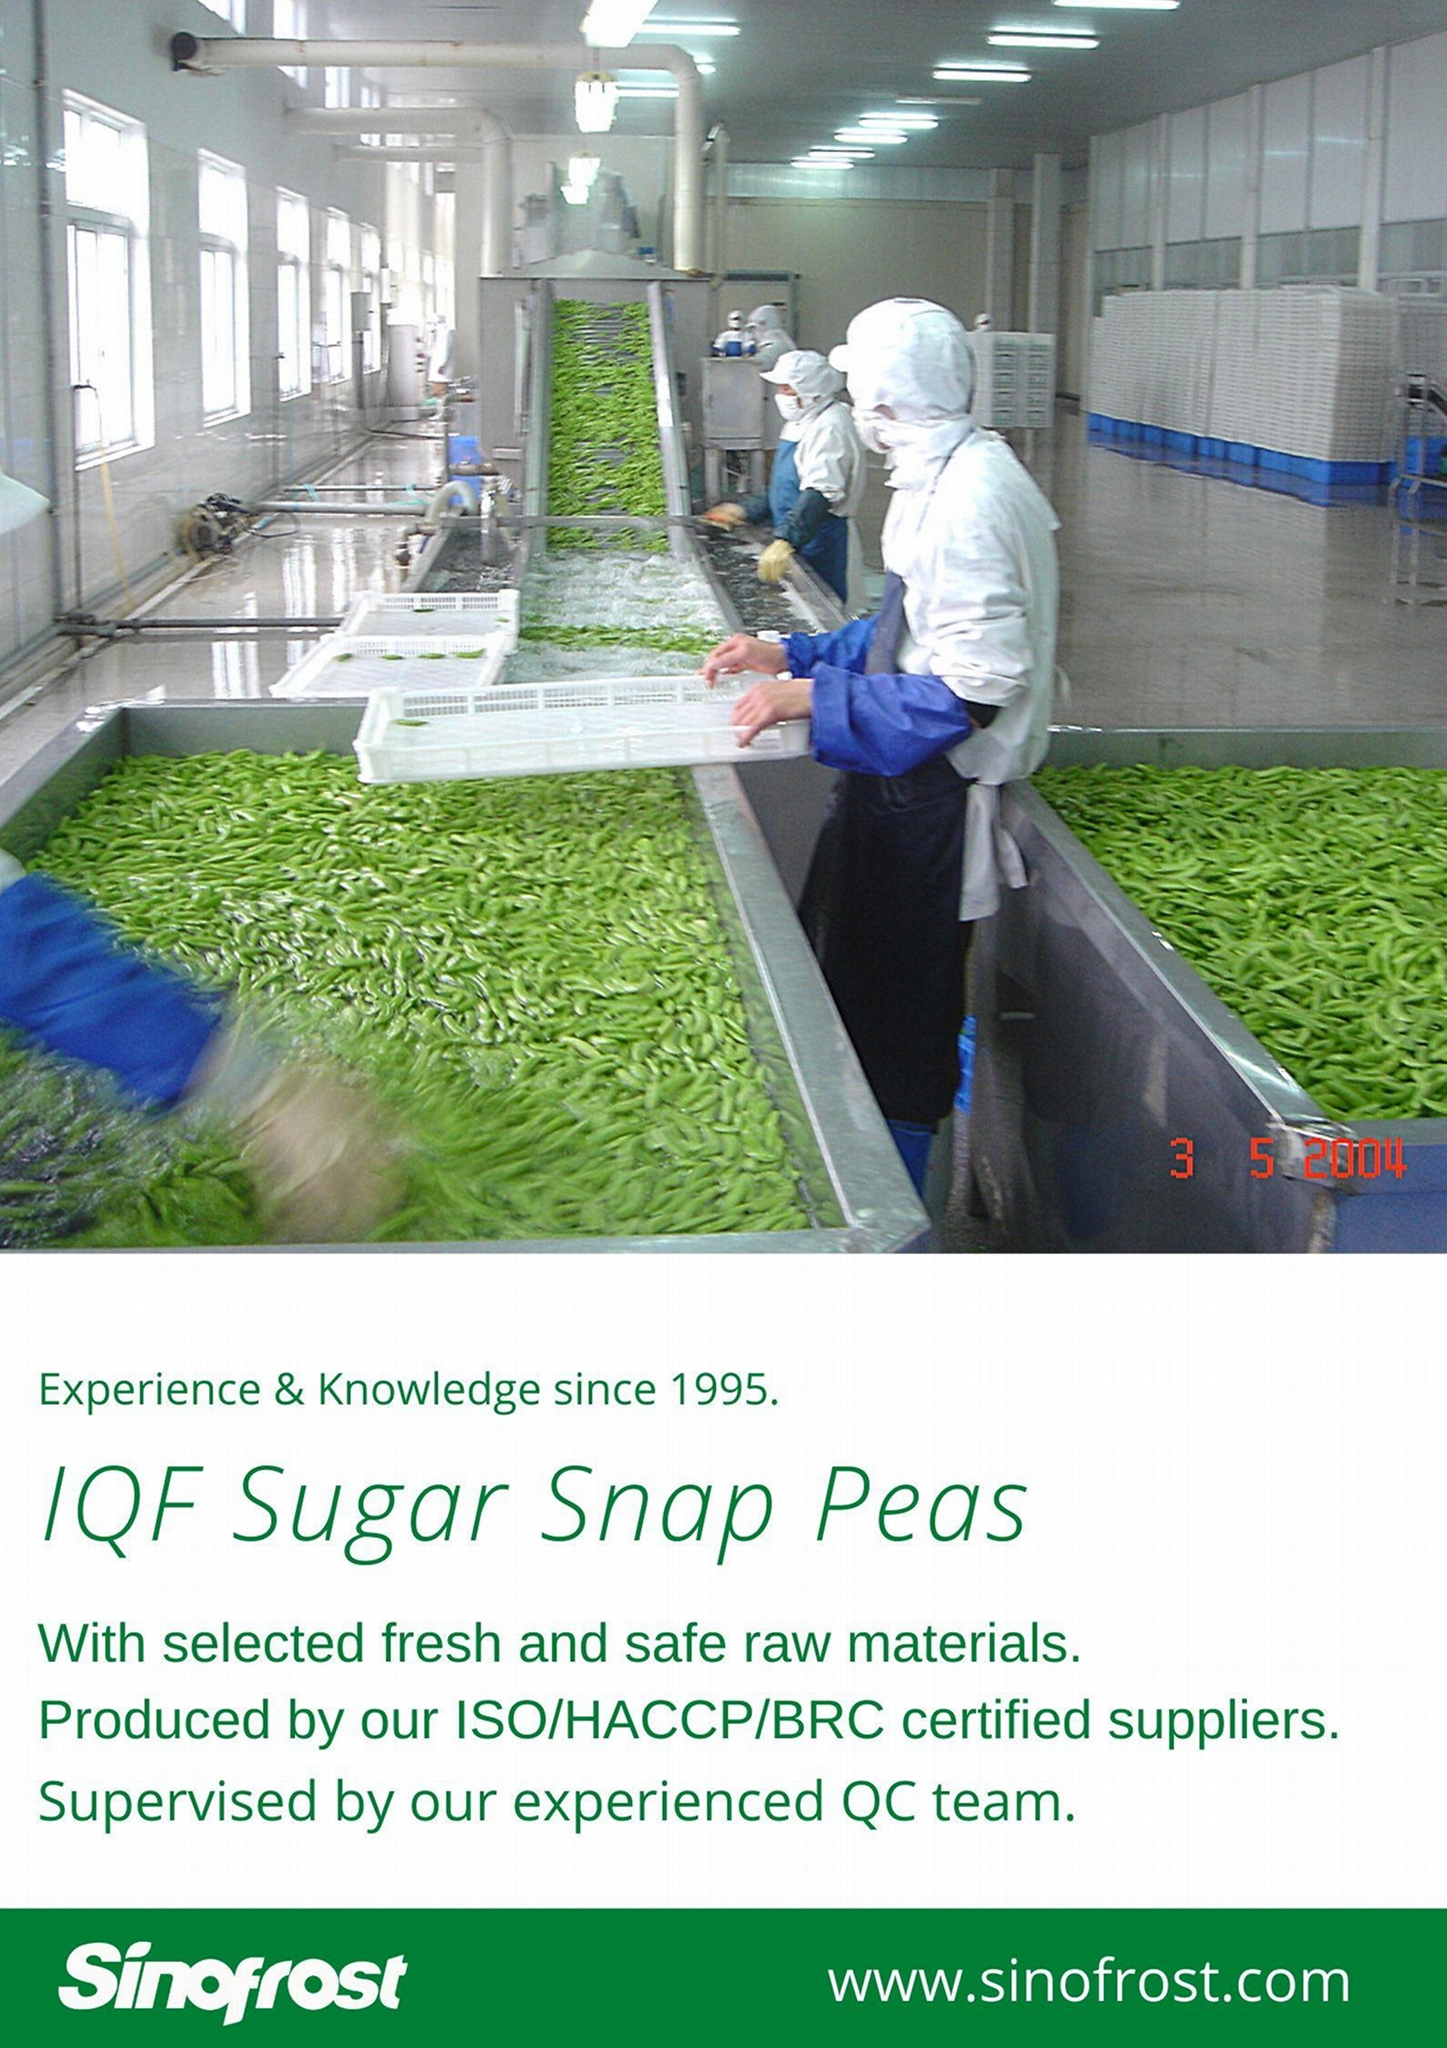 IQF Sugar Snap Peas,Frozen Sugar Snap Peas 12